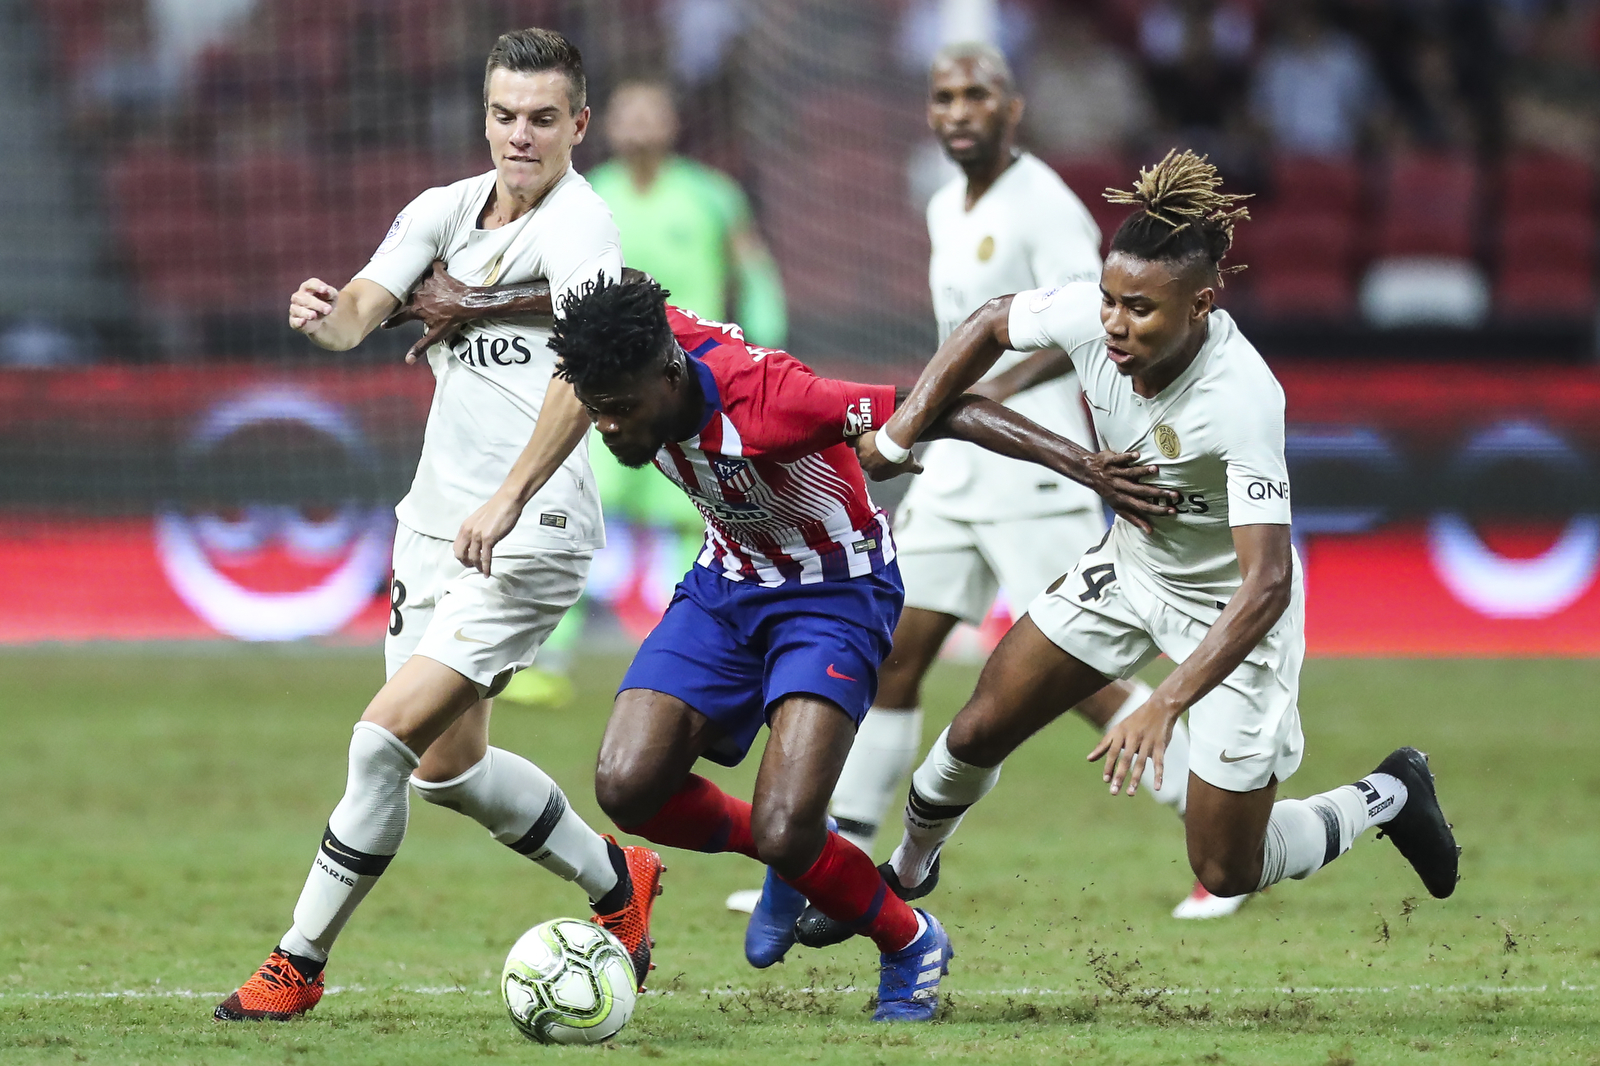 Atletico Madrid's Thomas Partey, center, controls the ball against Paris Saint-Germain's Giovani Lo Celso, left, and Christopher Nkunku  during the International Champions Cup match between Paris Saint-Germain and Atletico Madrid in Singapore, Monday, July 30, 2018. (AP Photo/Yong Teck Lim)